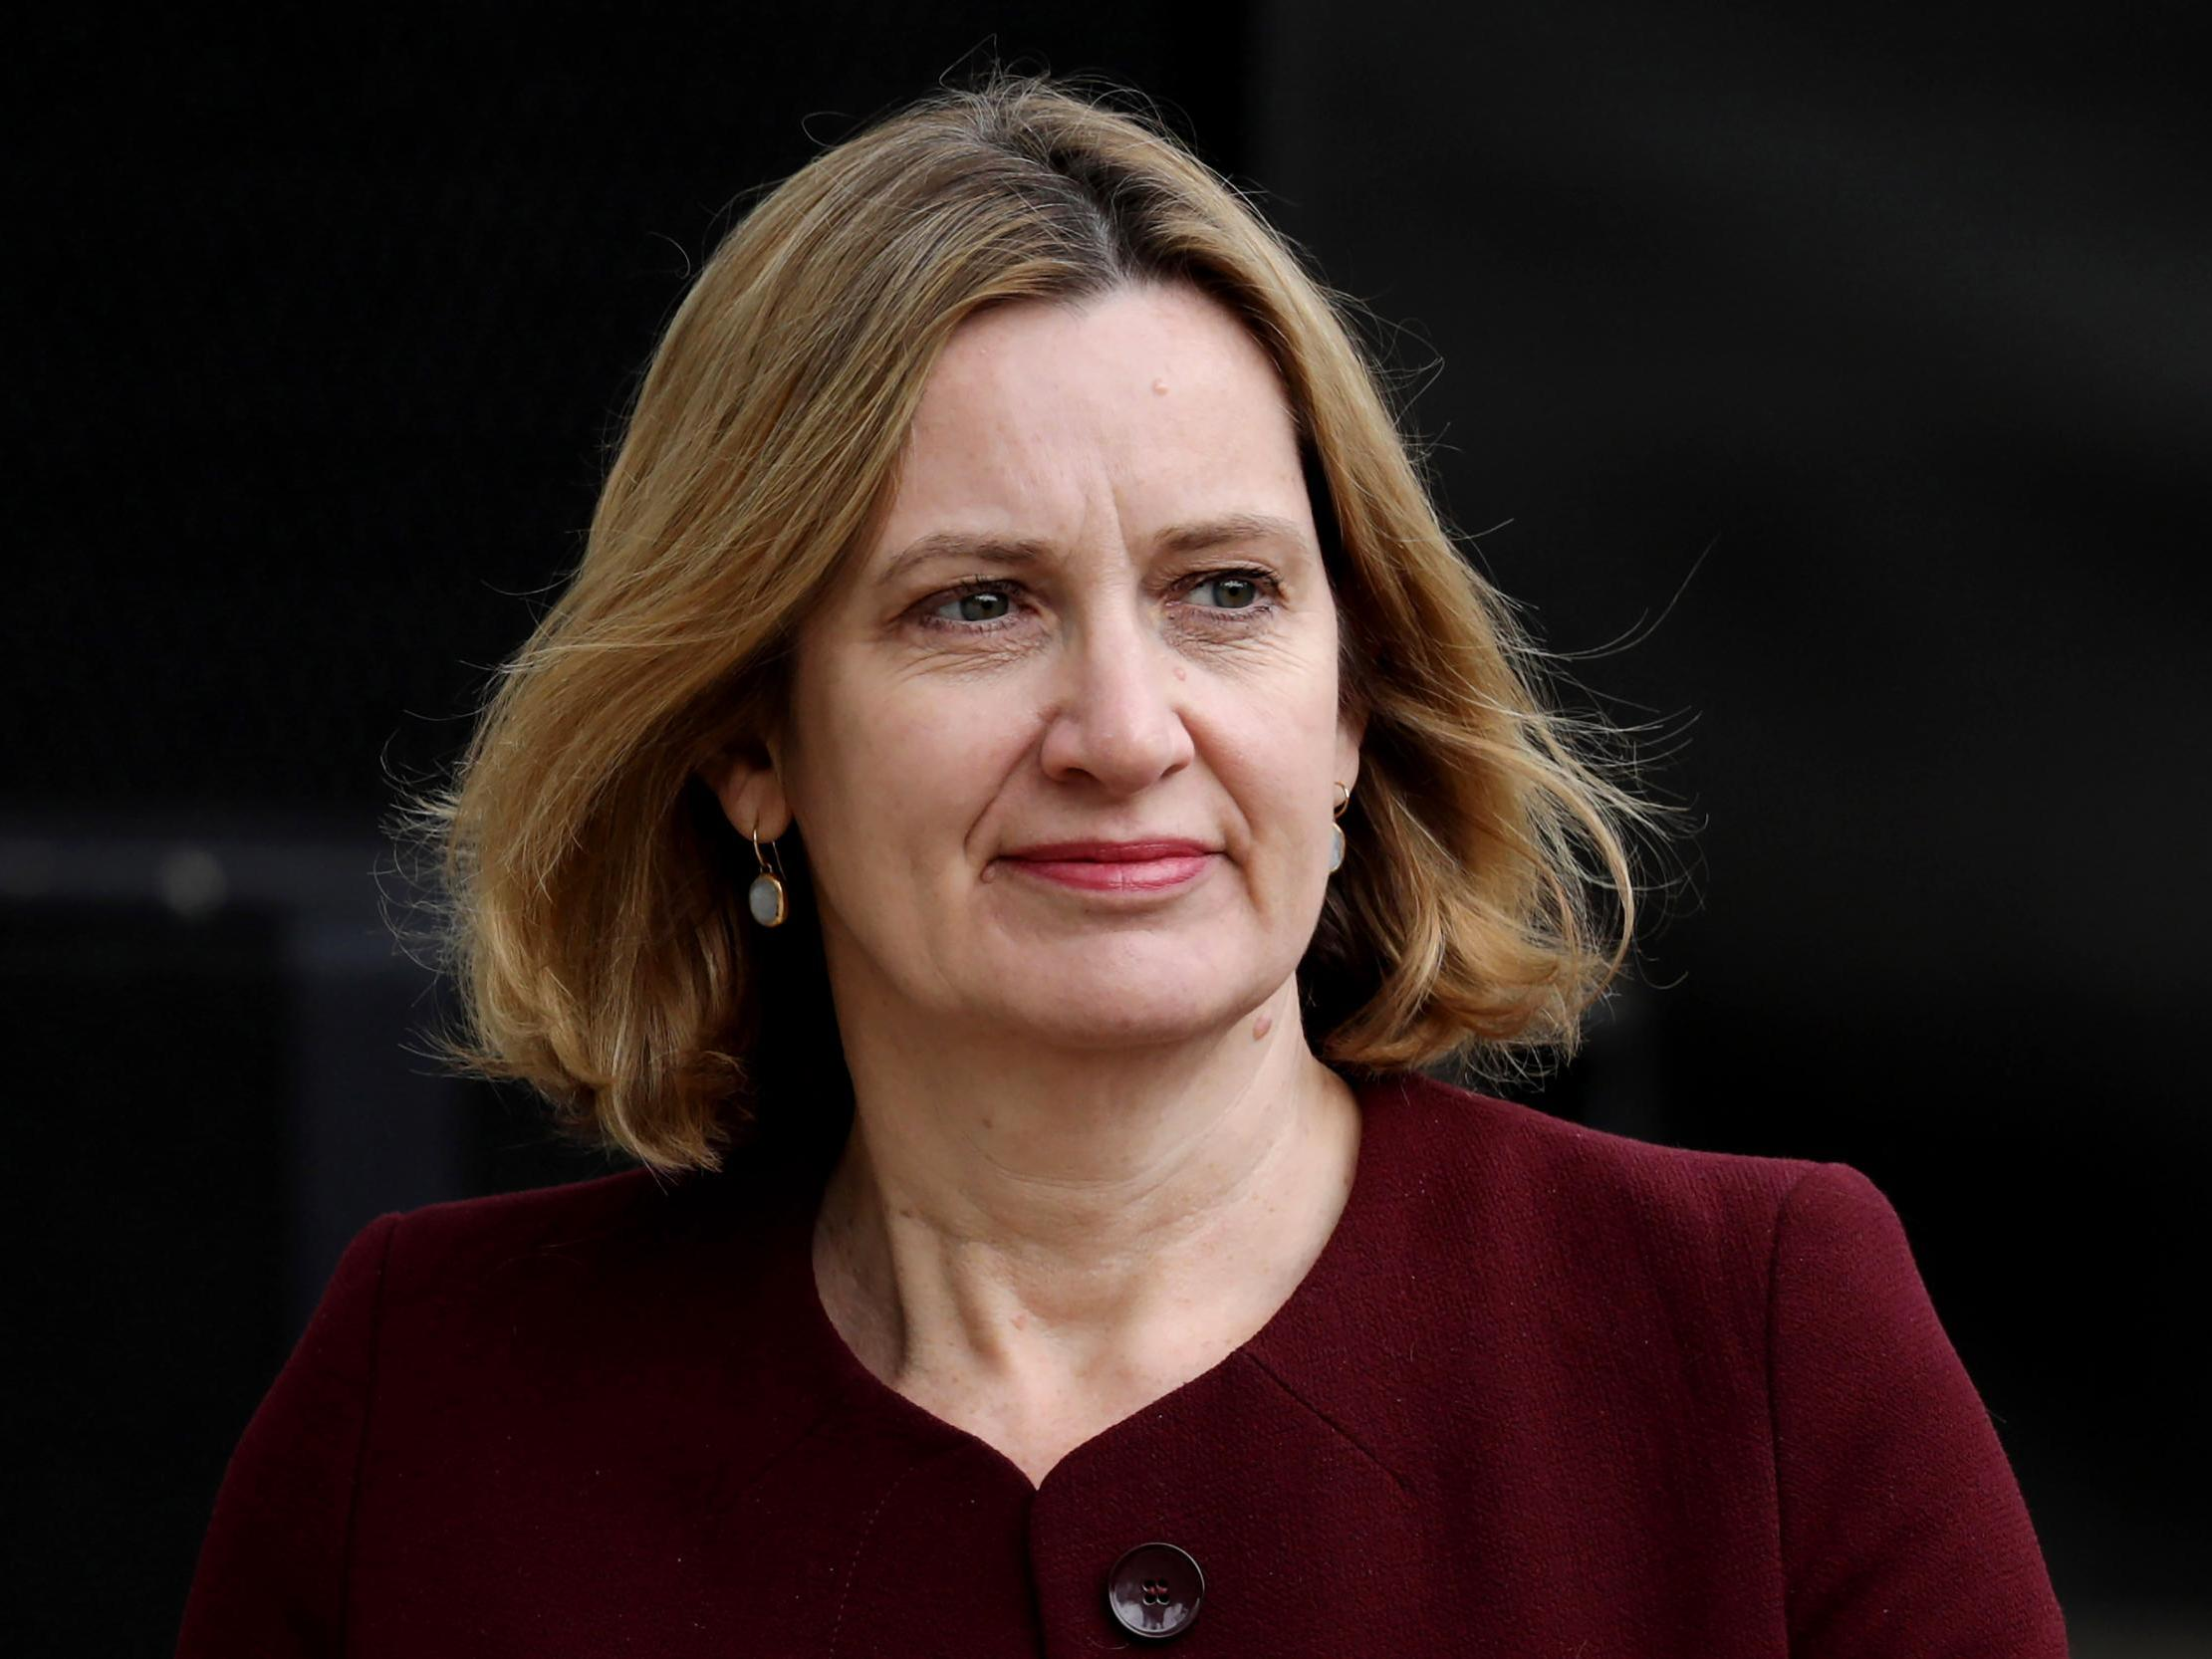 Amber Rudd's response to her daughter Flora Gill talking about sex sparks hilarity on Twitter